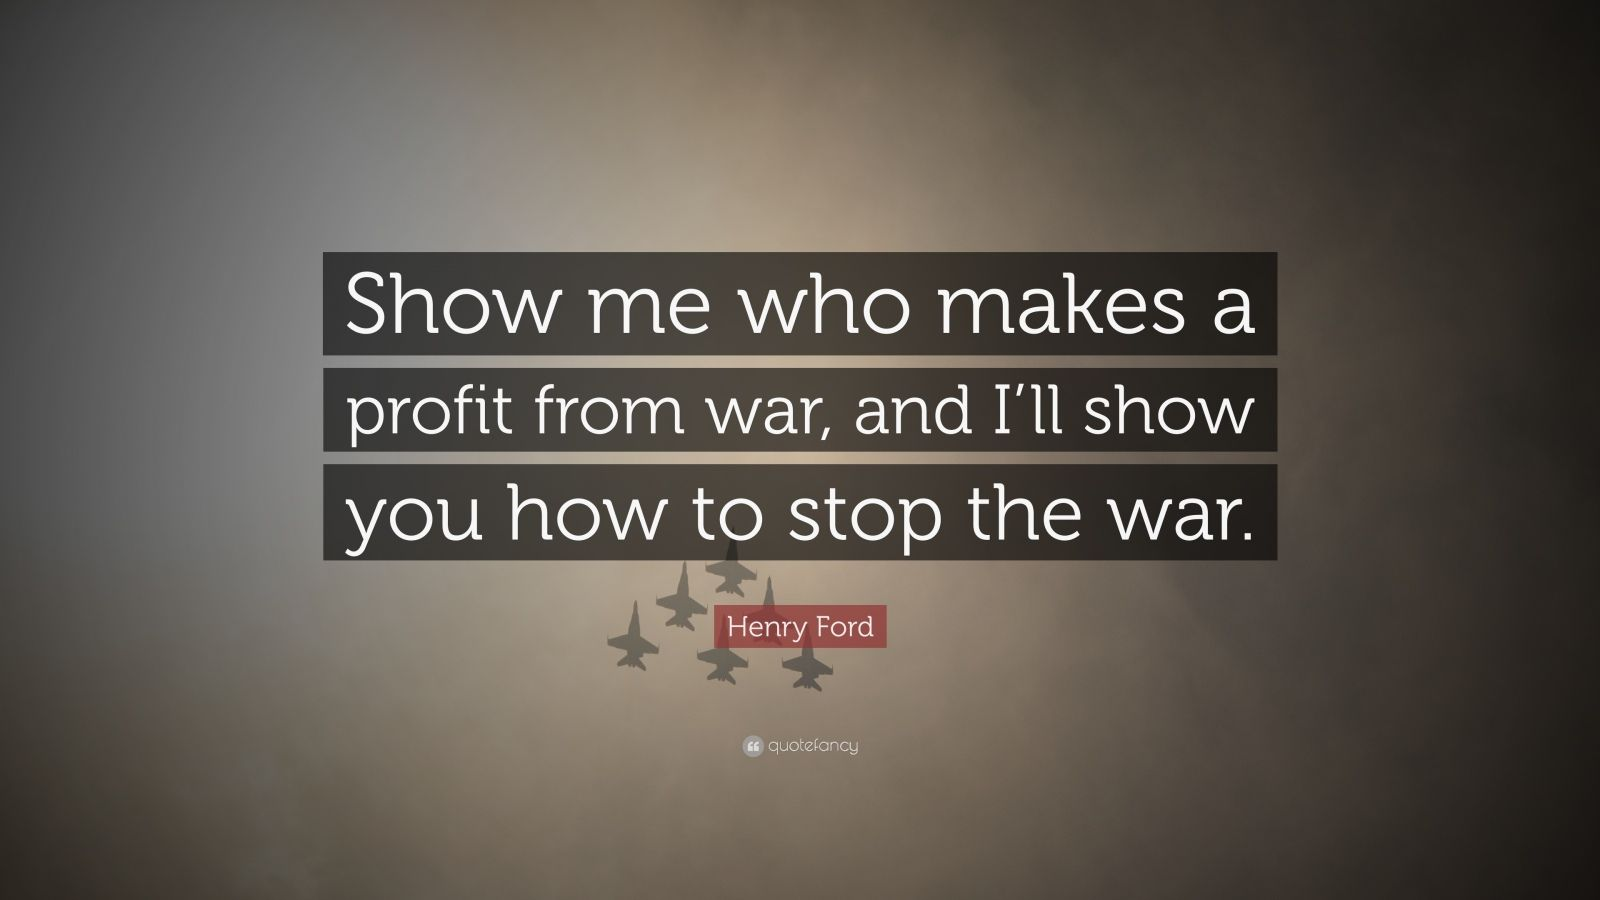 """Henry Ford Quote: """"Show me who makes a profit from war, and I'll show you how to stop the war."""""""